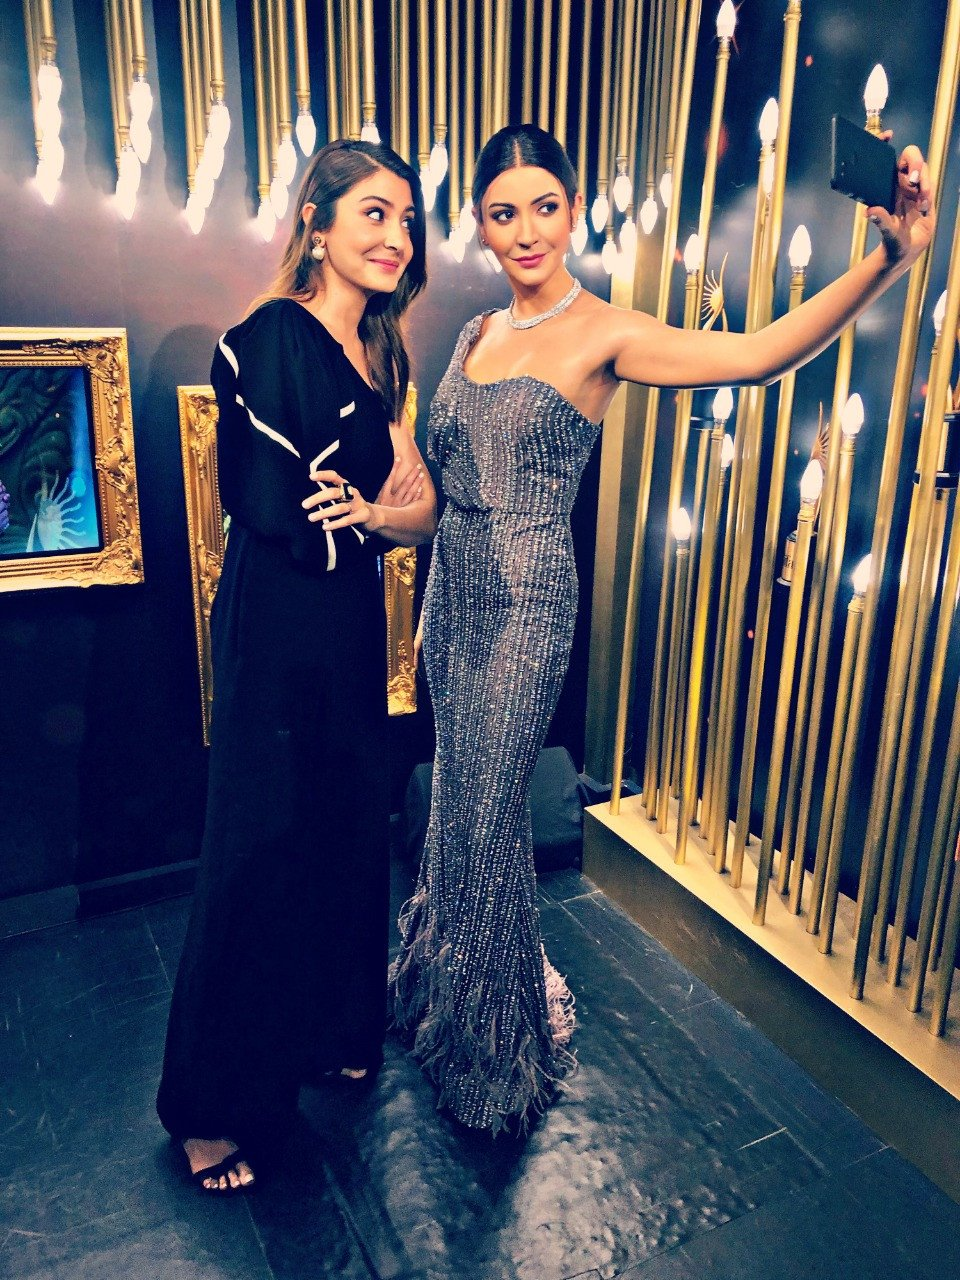 Anushka Sharma unveils her wax statue at Madame Tussauds Singapore